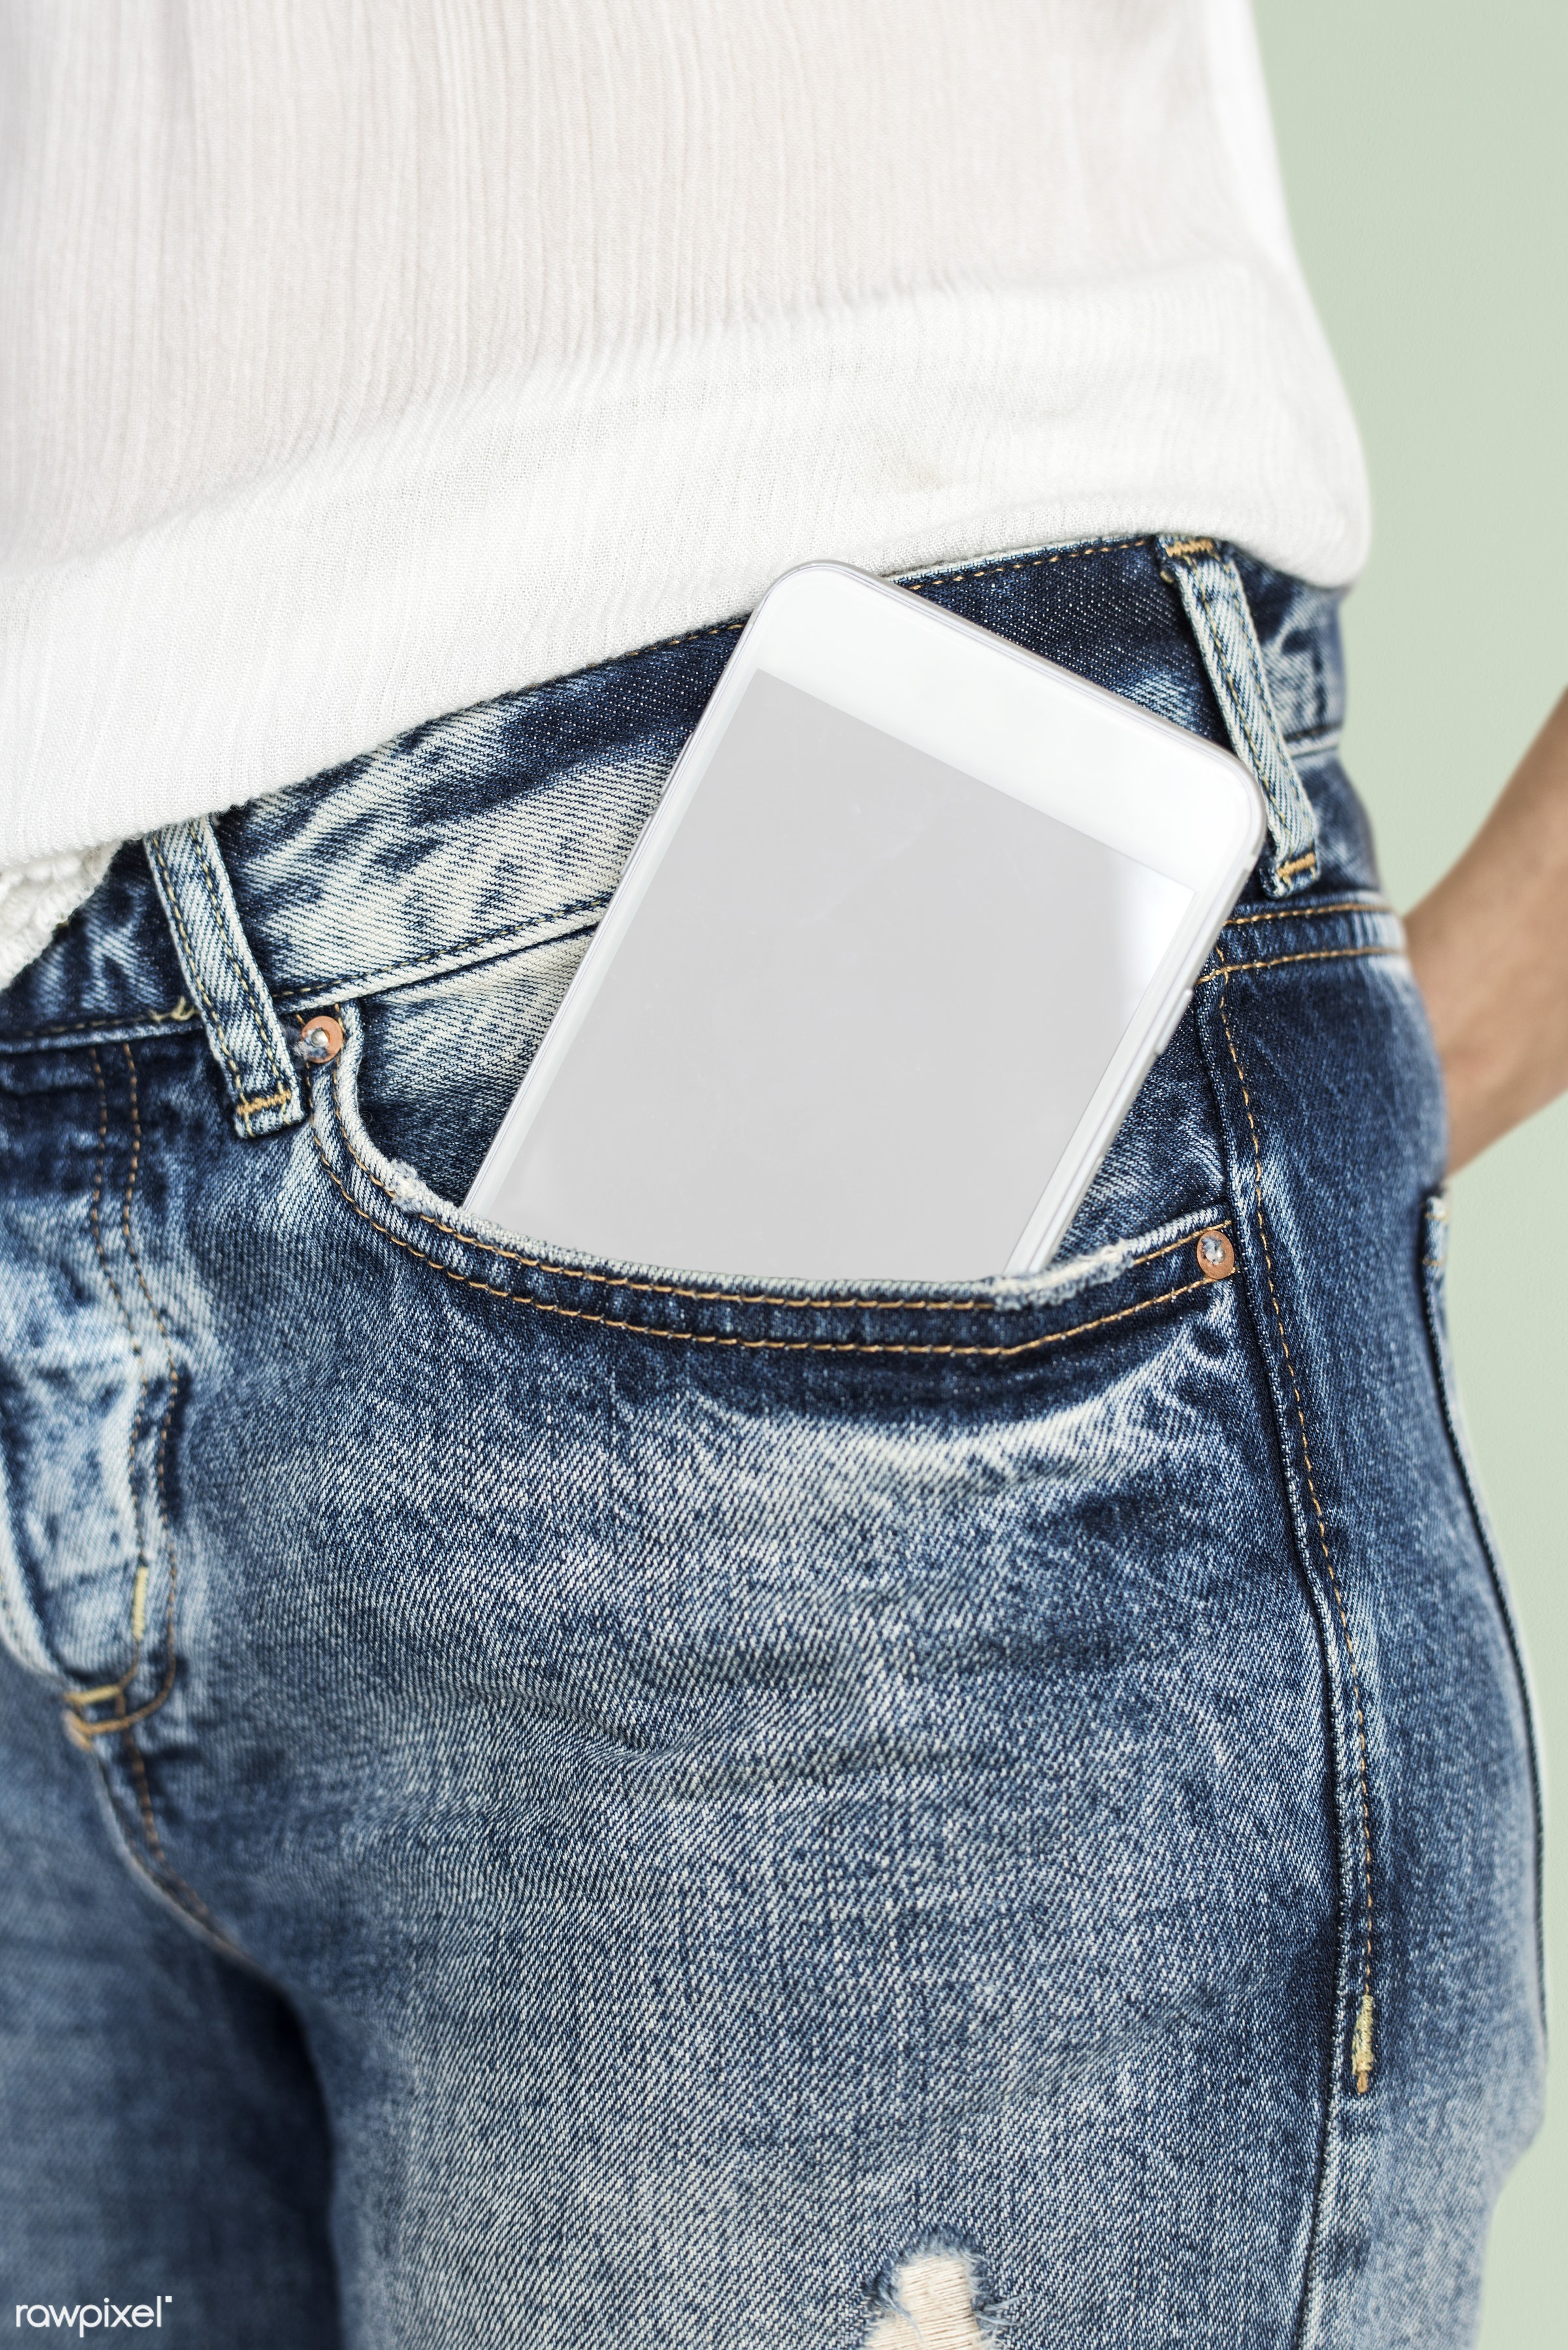 digital device, body, copy space, person, portable, technology, pants, hip, device screen, equipment, people, wireless...